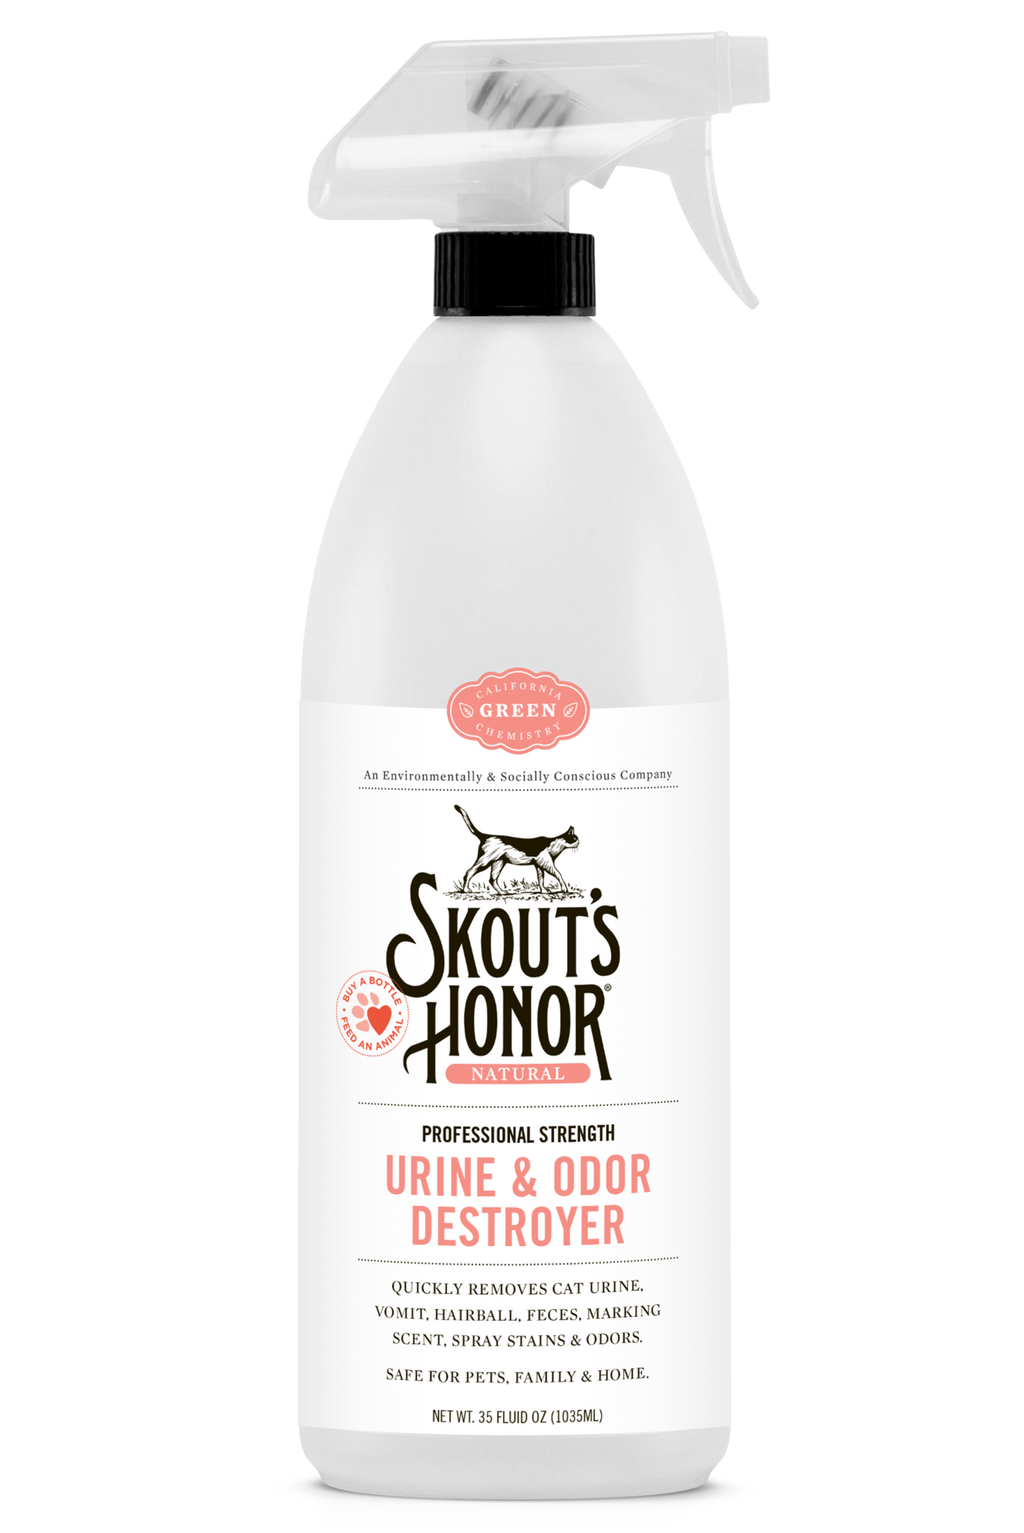 Skout's Honor - Urine & Odor Destroyer